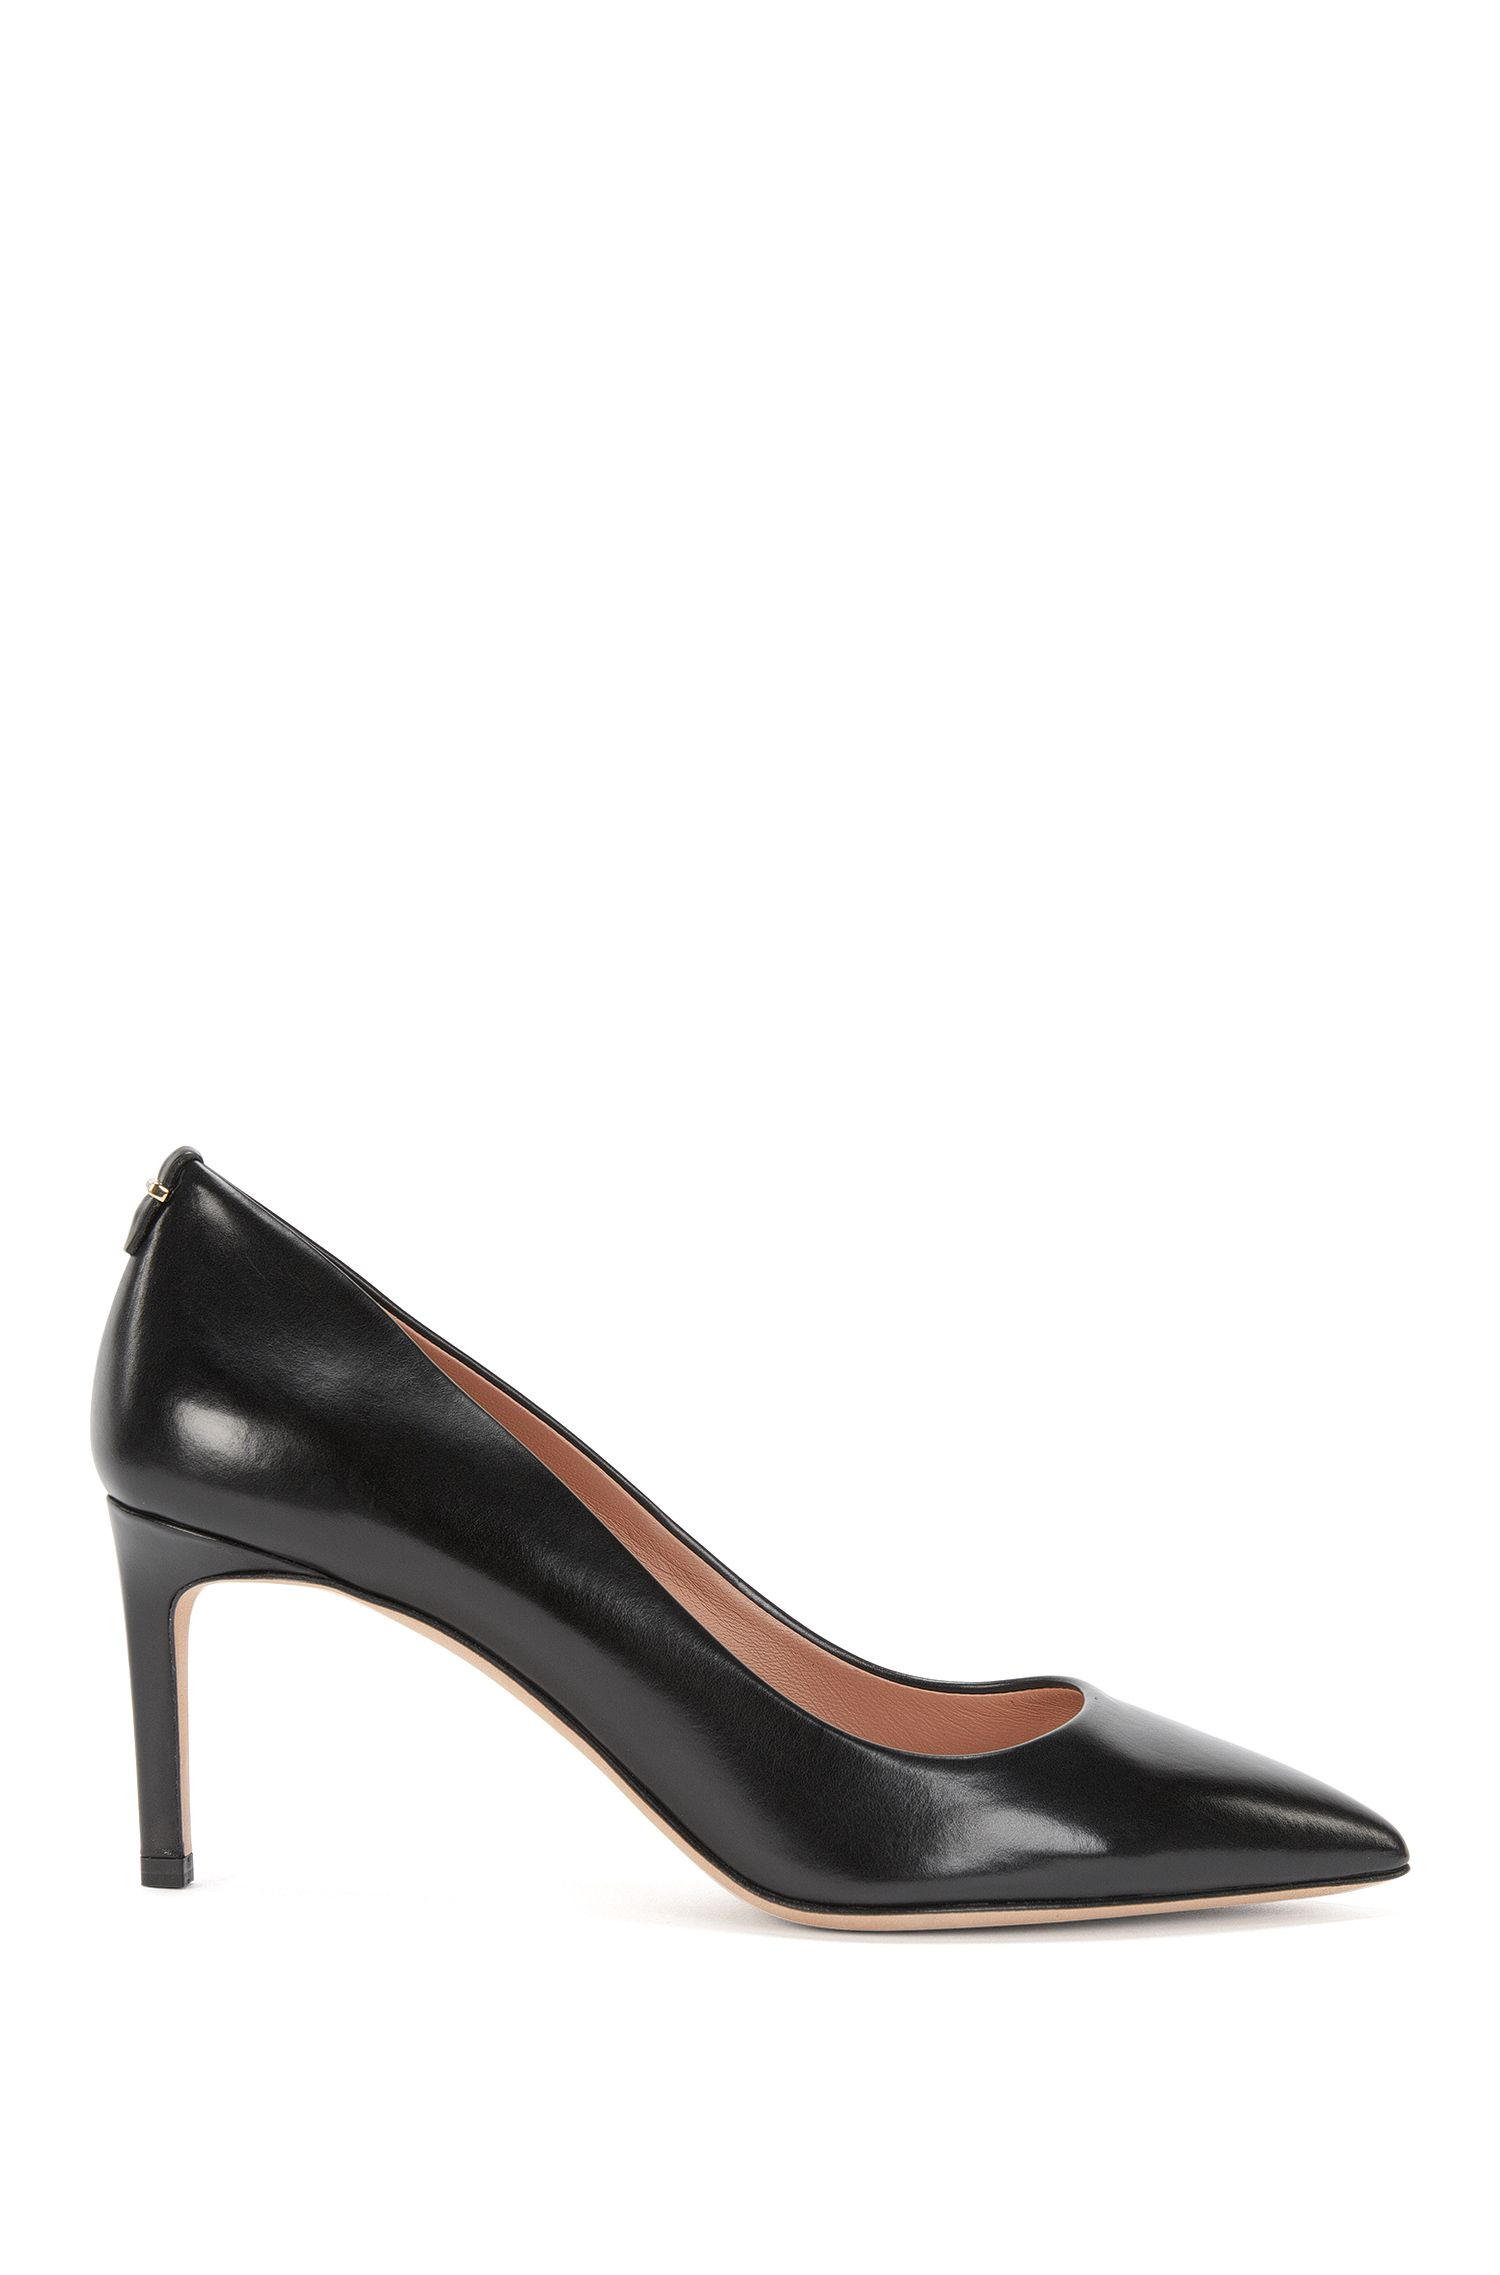 BOSS Luxury Staple pumps in rich Italian leather